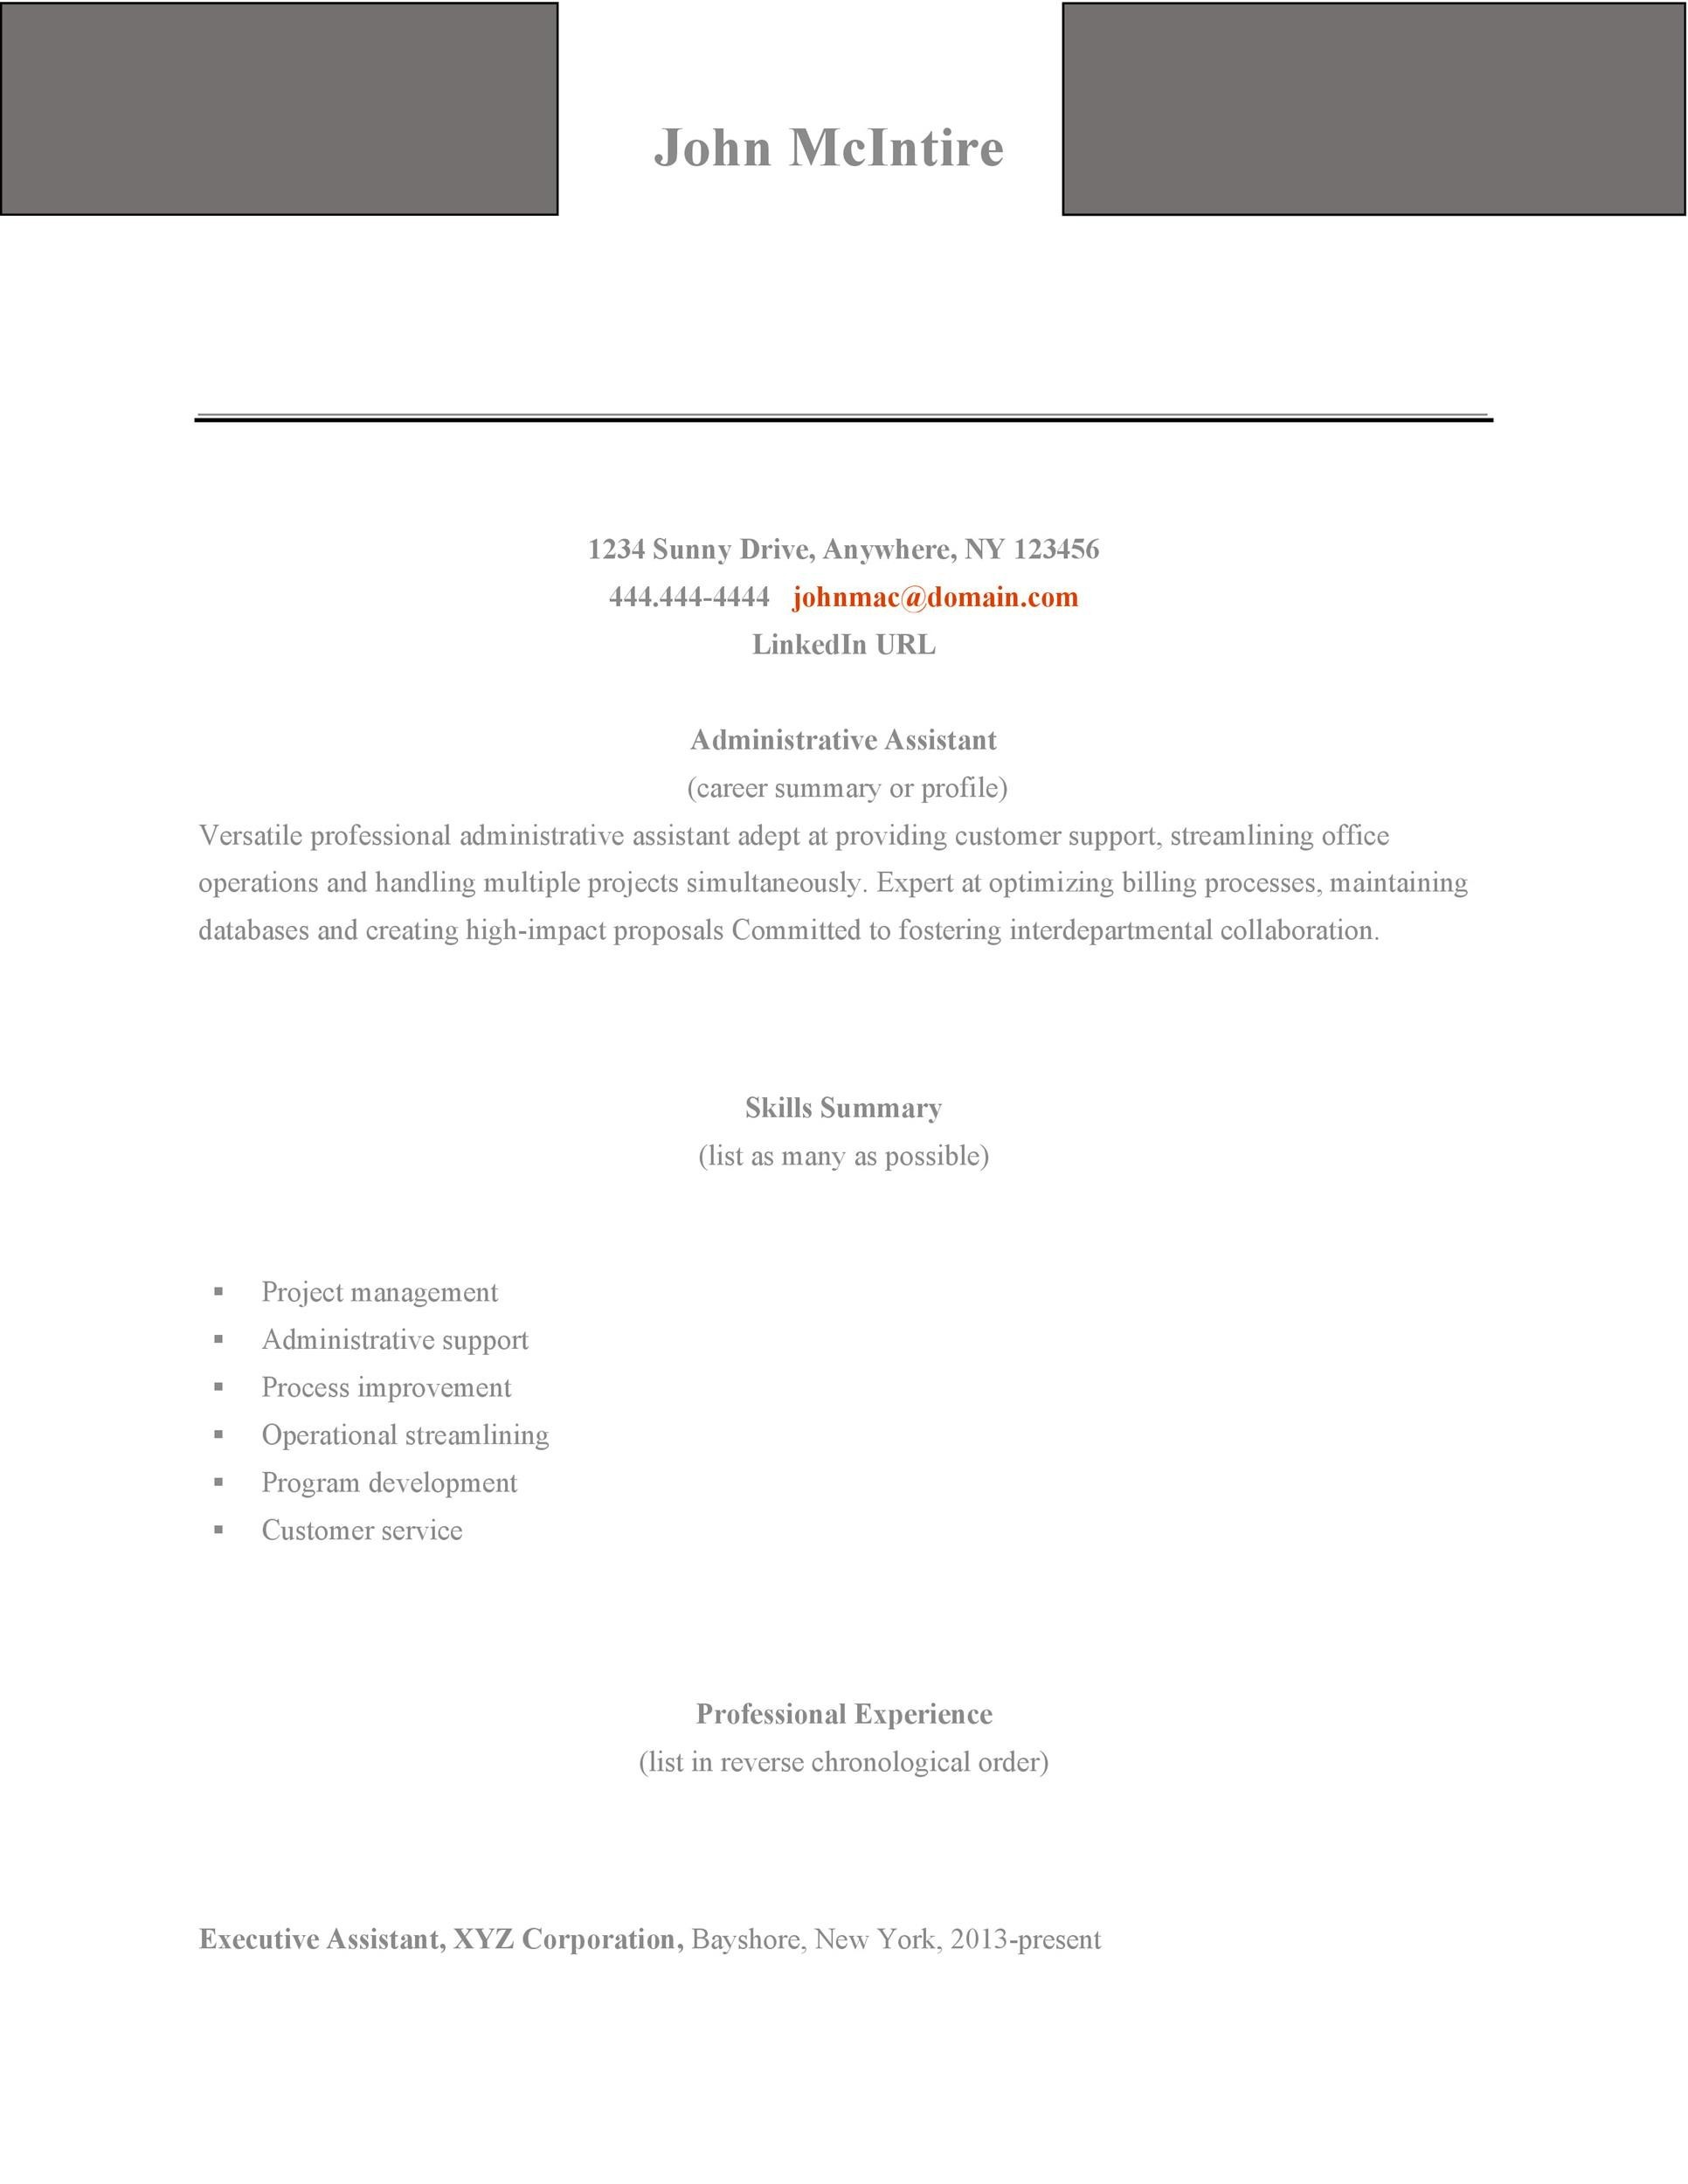 Free Administrative Assistant Resume Template 13